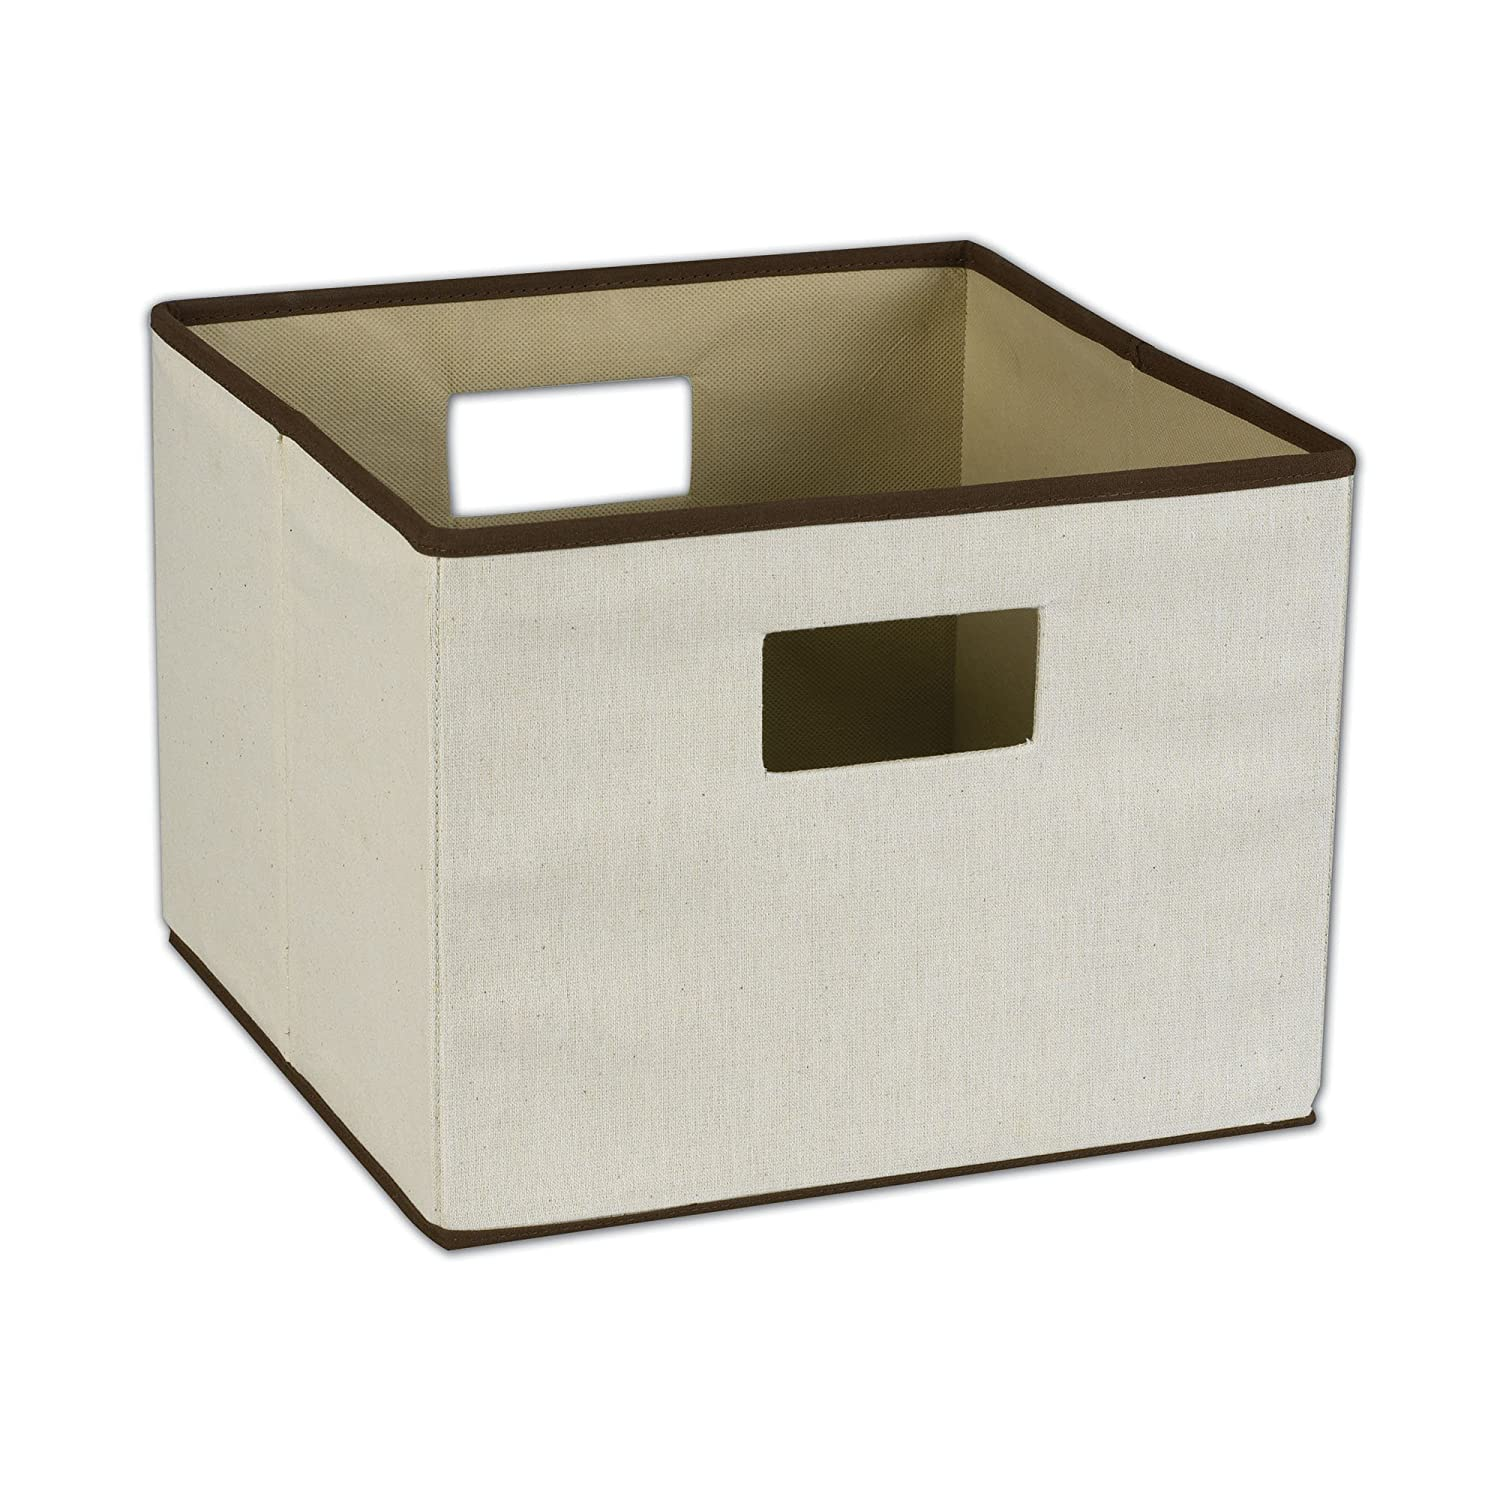 Amazon.com: Household Essentials Storage Bin With Handles, Natural Canvas  With Brown Trim: Home U0026 Kitchen